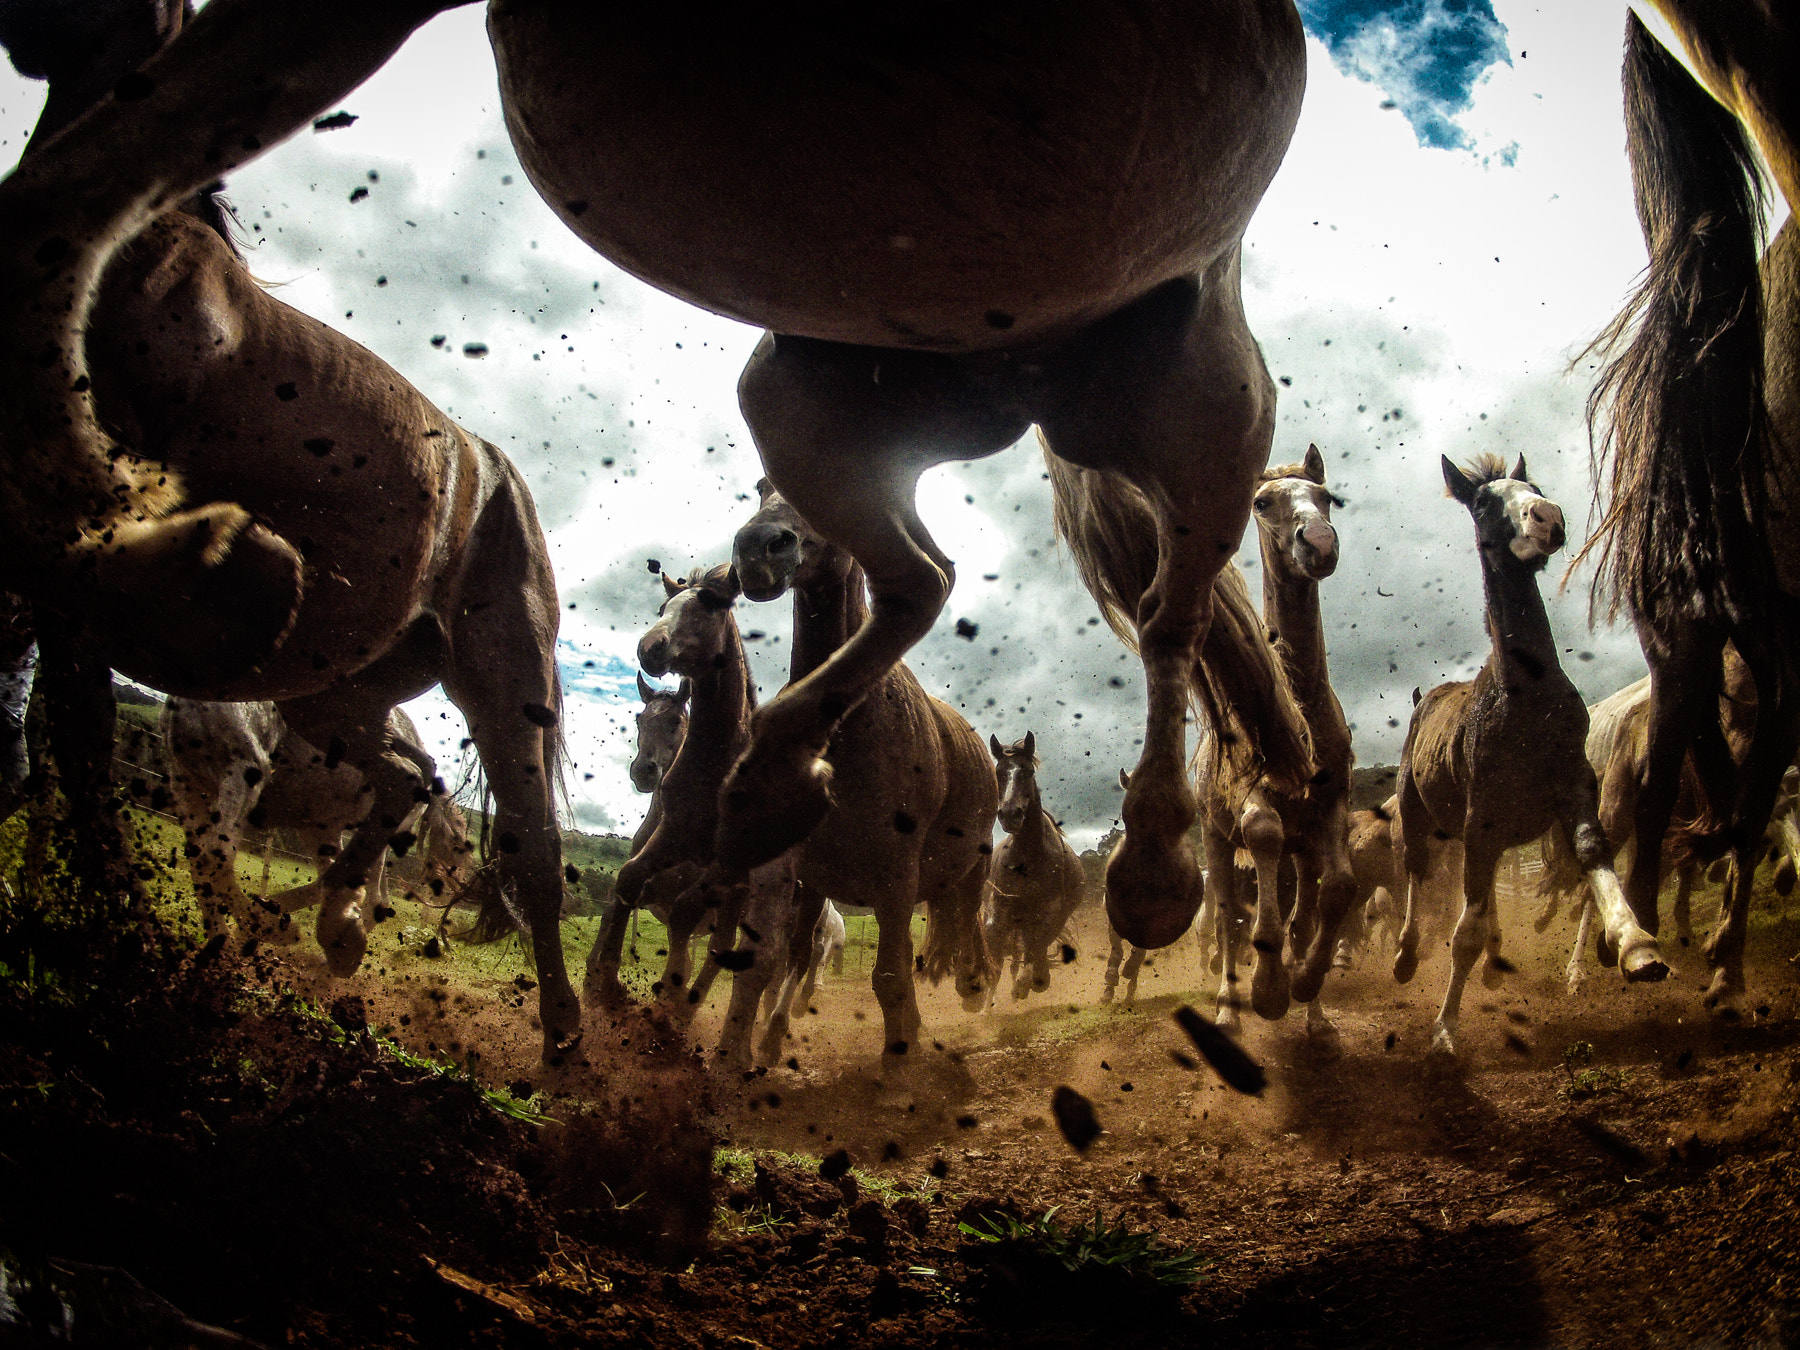 Photograph Horses power by Chris Schmid on 500px